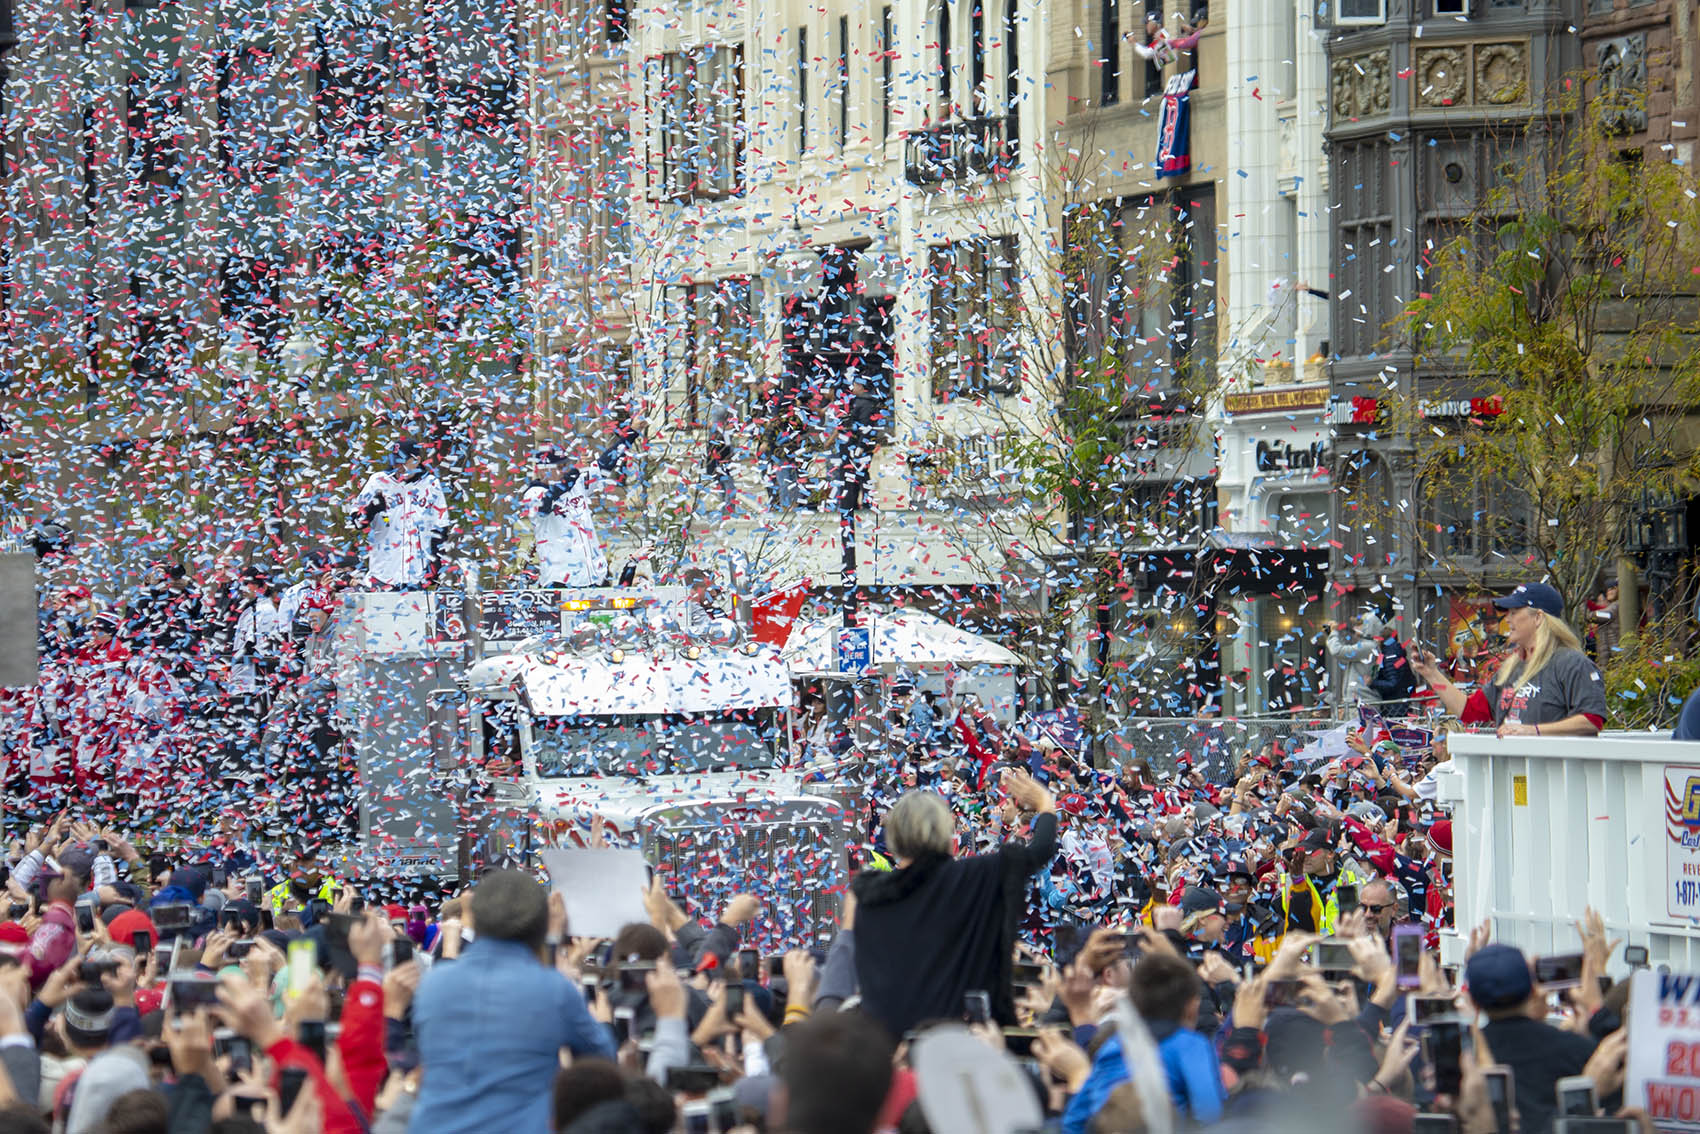 Fans cheer and confetti flies in the air as the Red Sox World Series victory Rolling Rally enters Copley Square on Boylston Street. (Jesse Costa/WBUR)